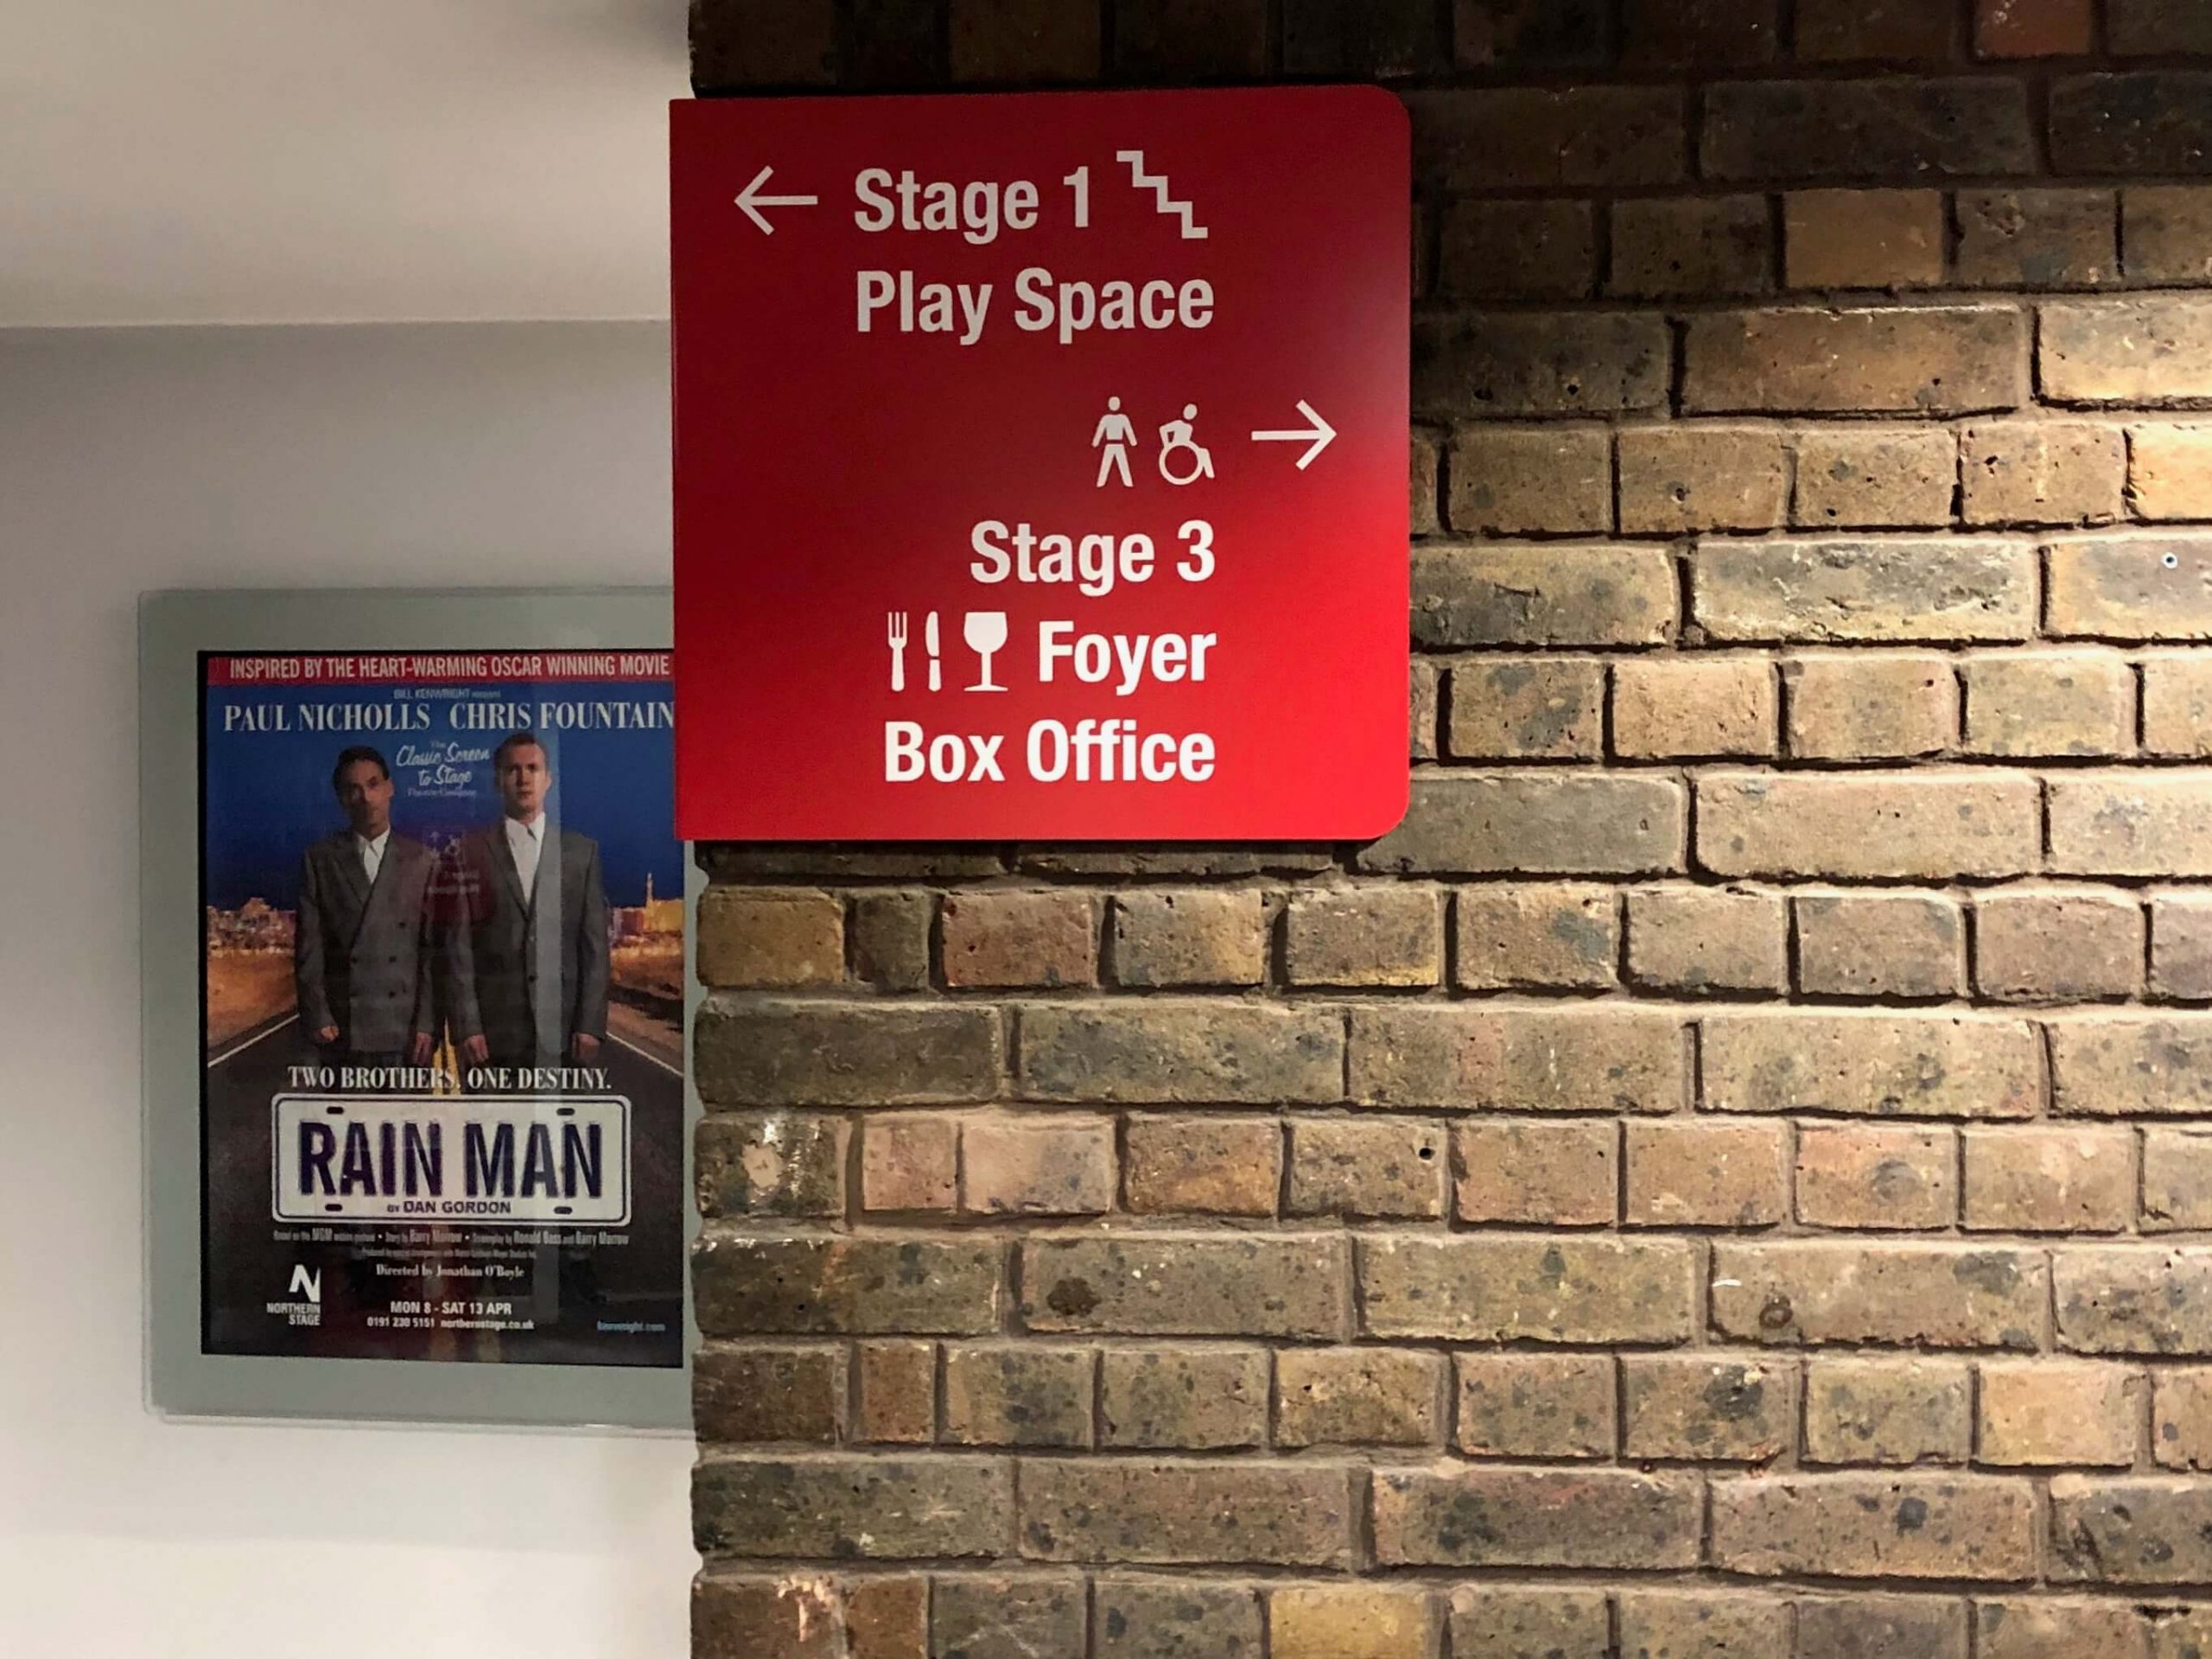 Directional signage in a theatre